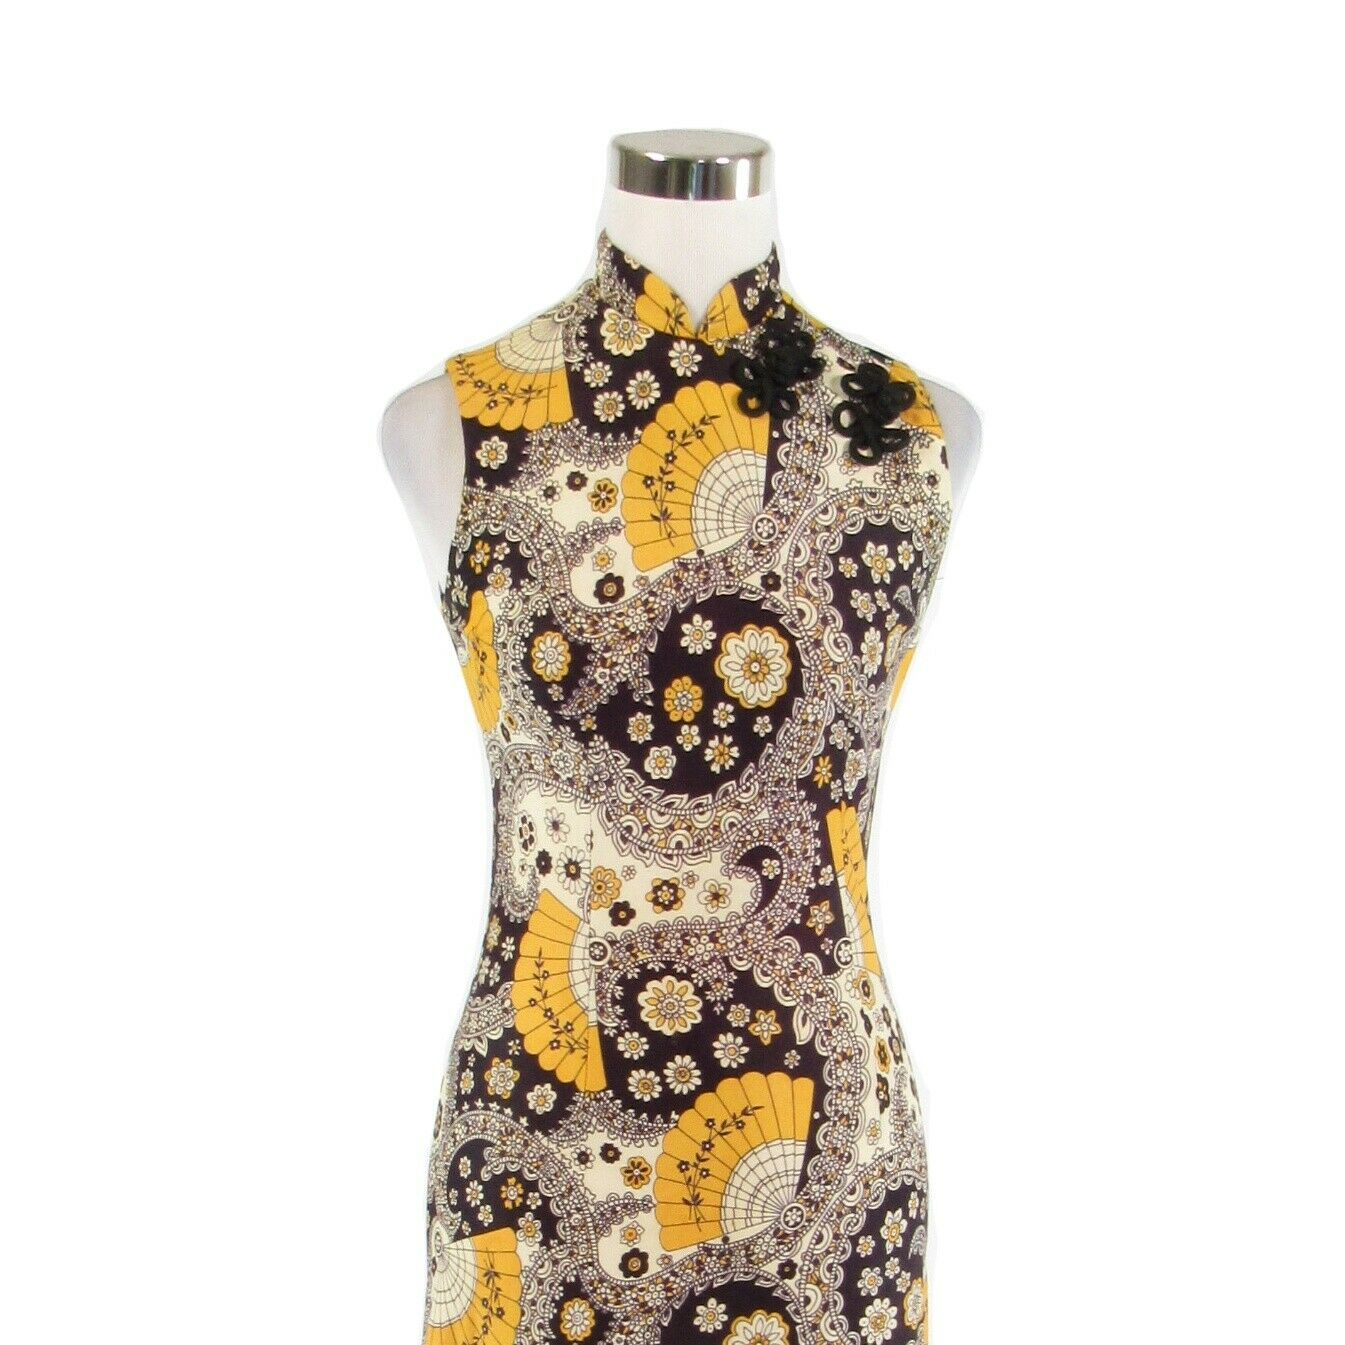 Midnight blue yellow paisley sleeveless vintage maxi dress S image 2